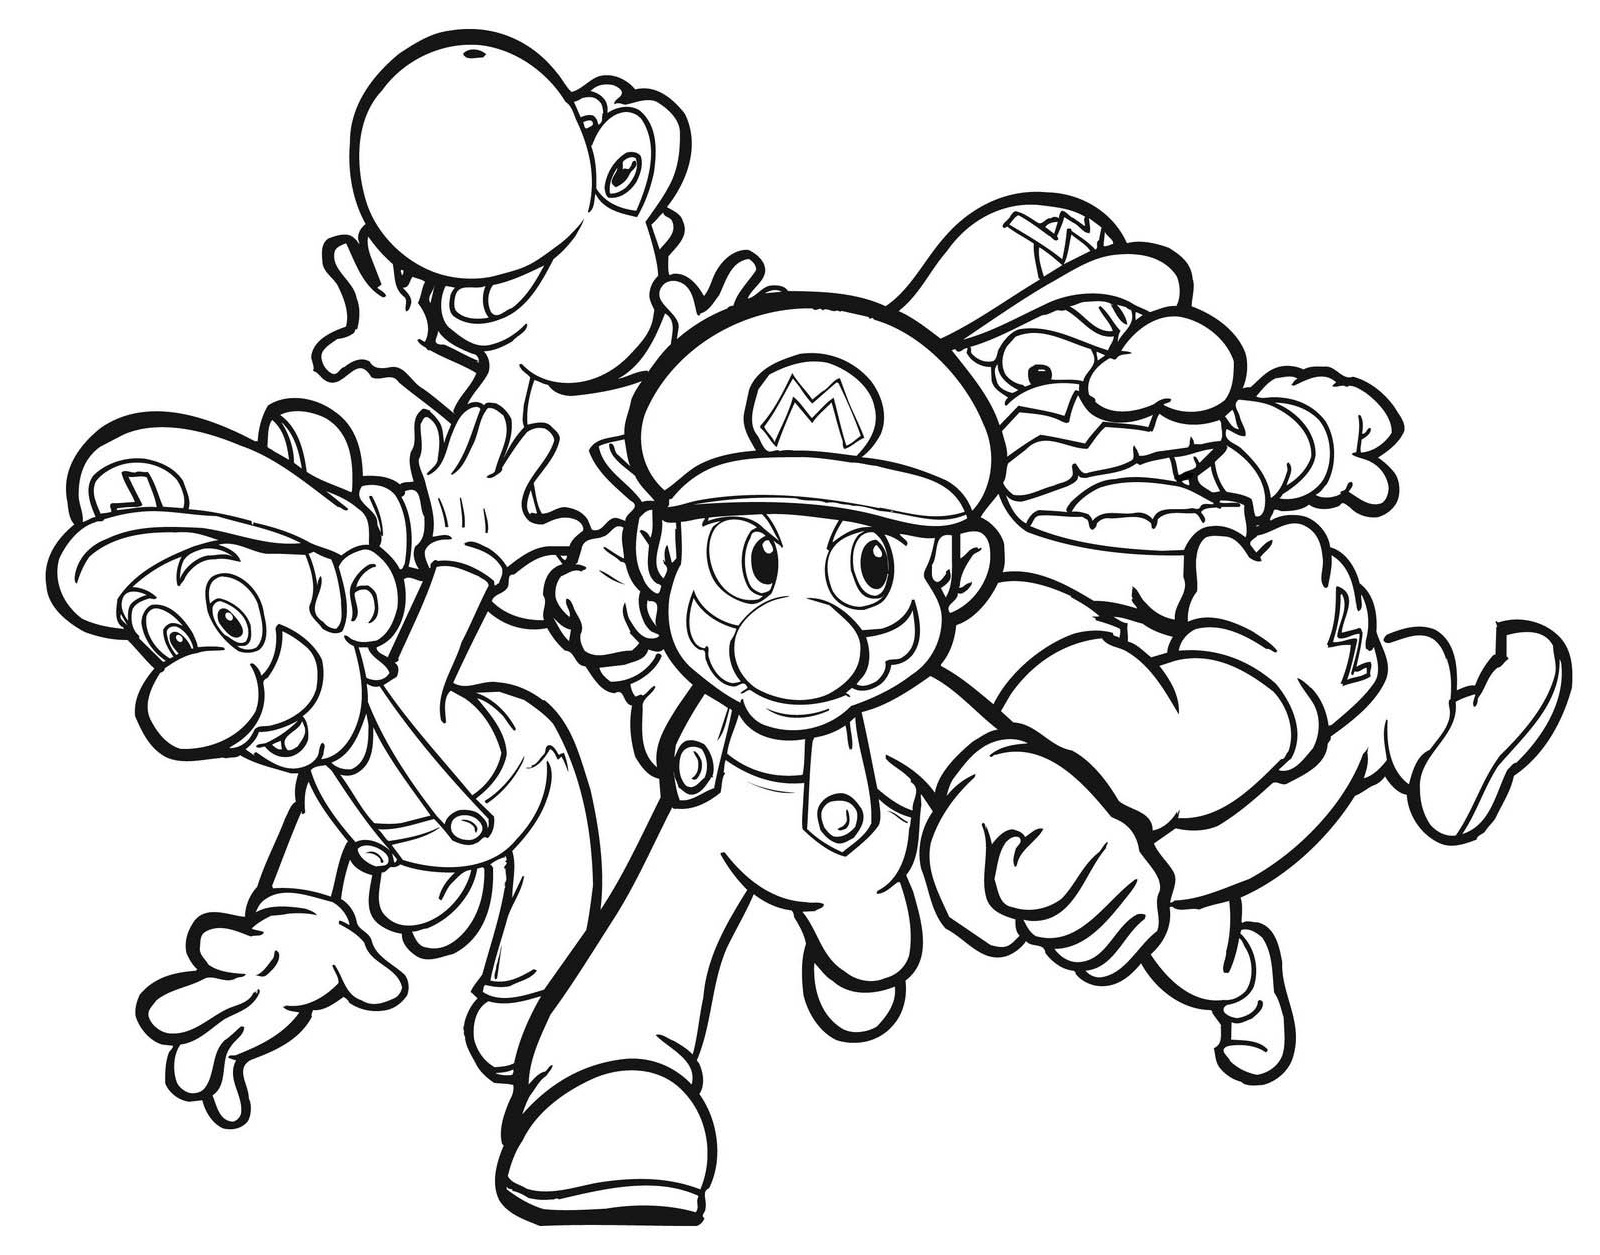 1600x1255 Coloring Pages Mario Lenito Mario Coloring Pages Free Coloring